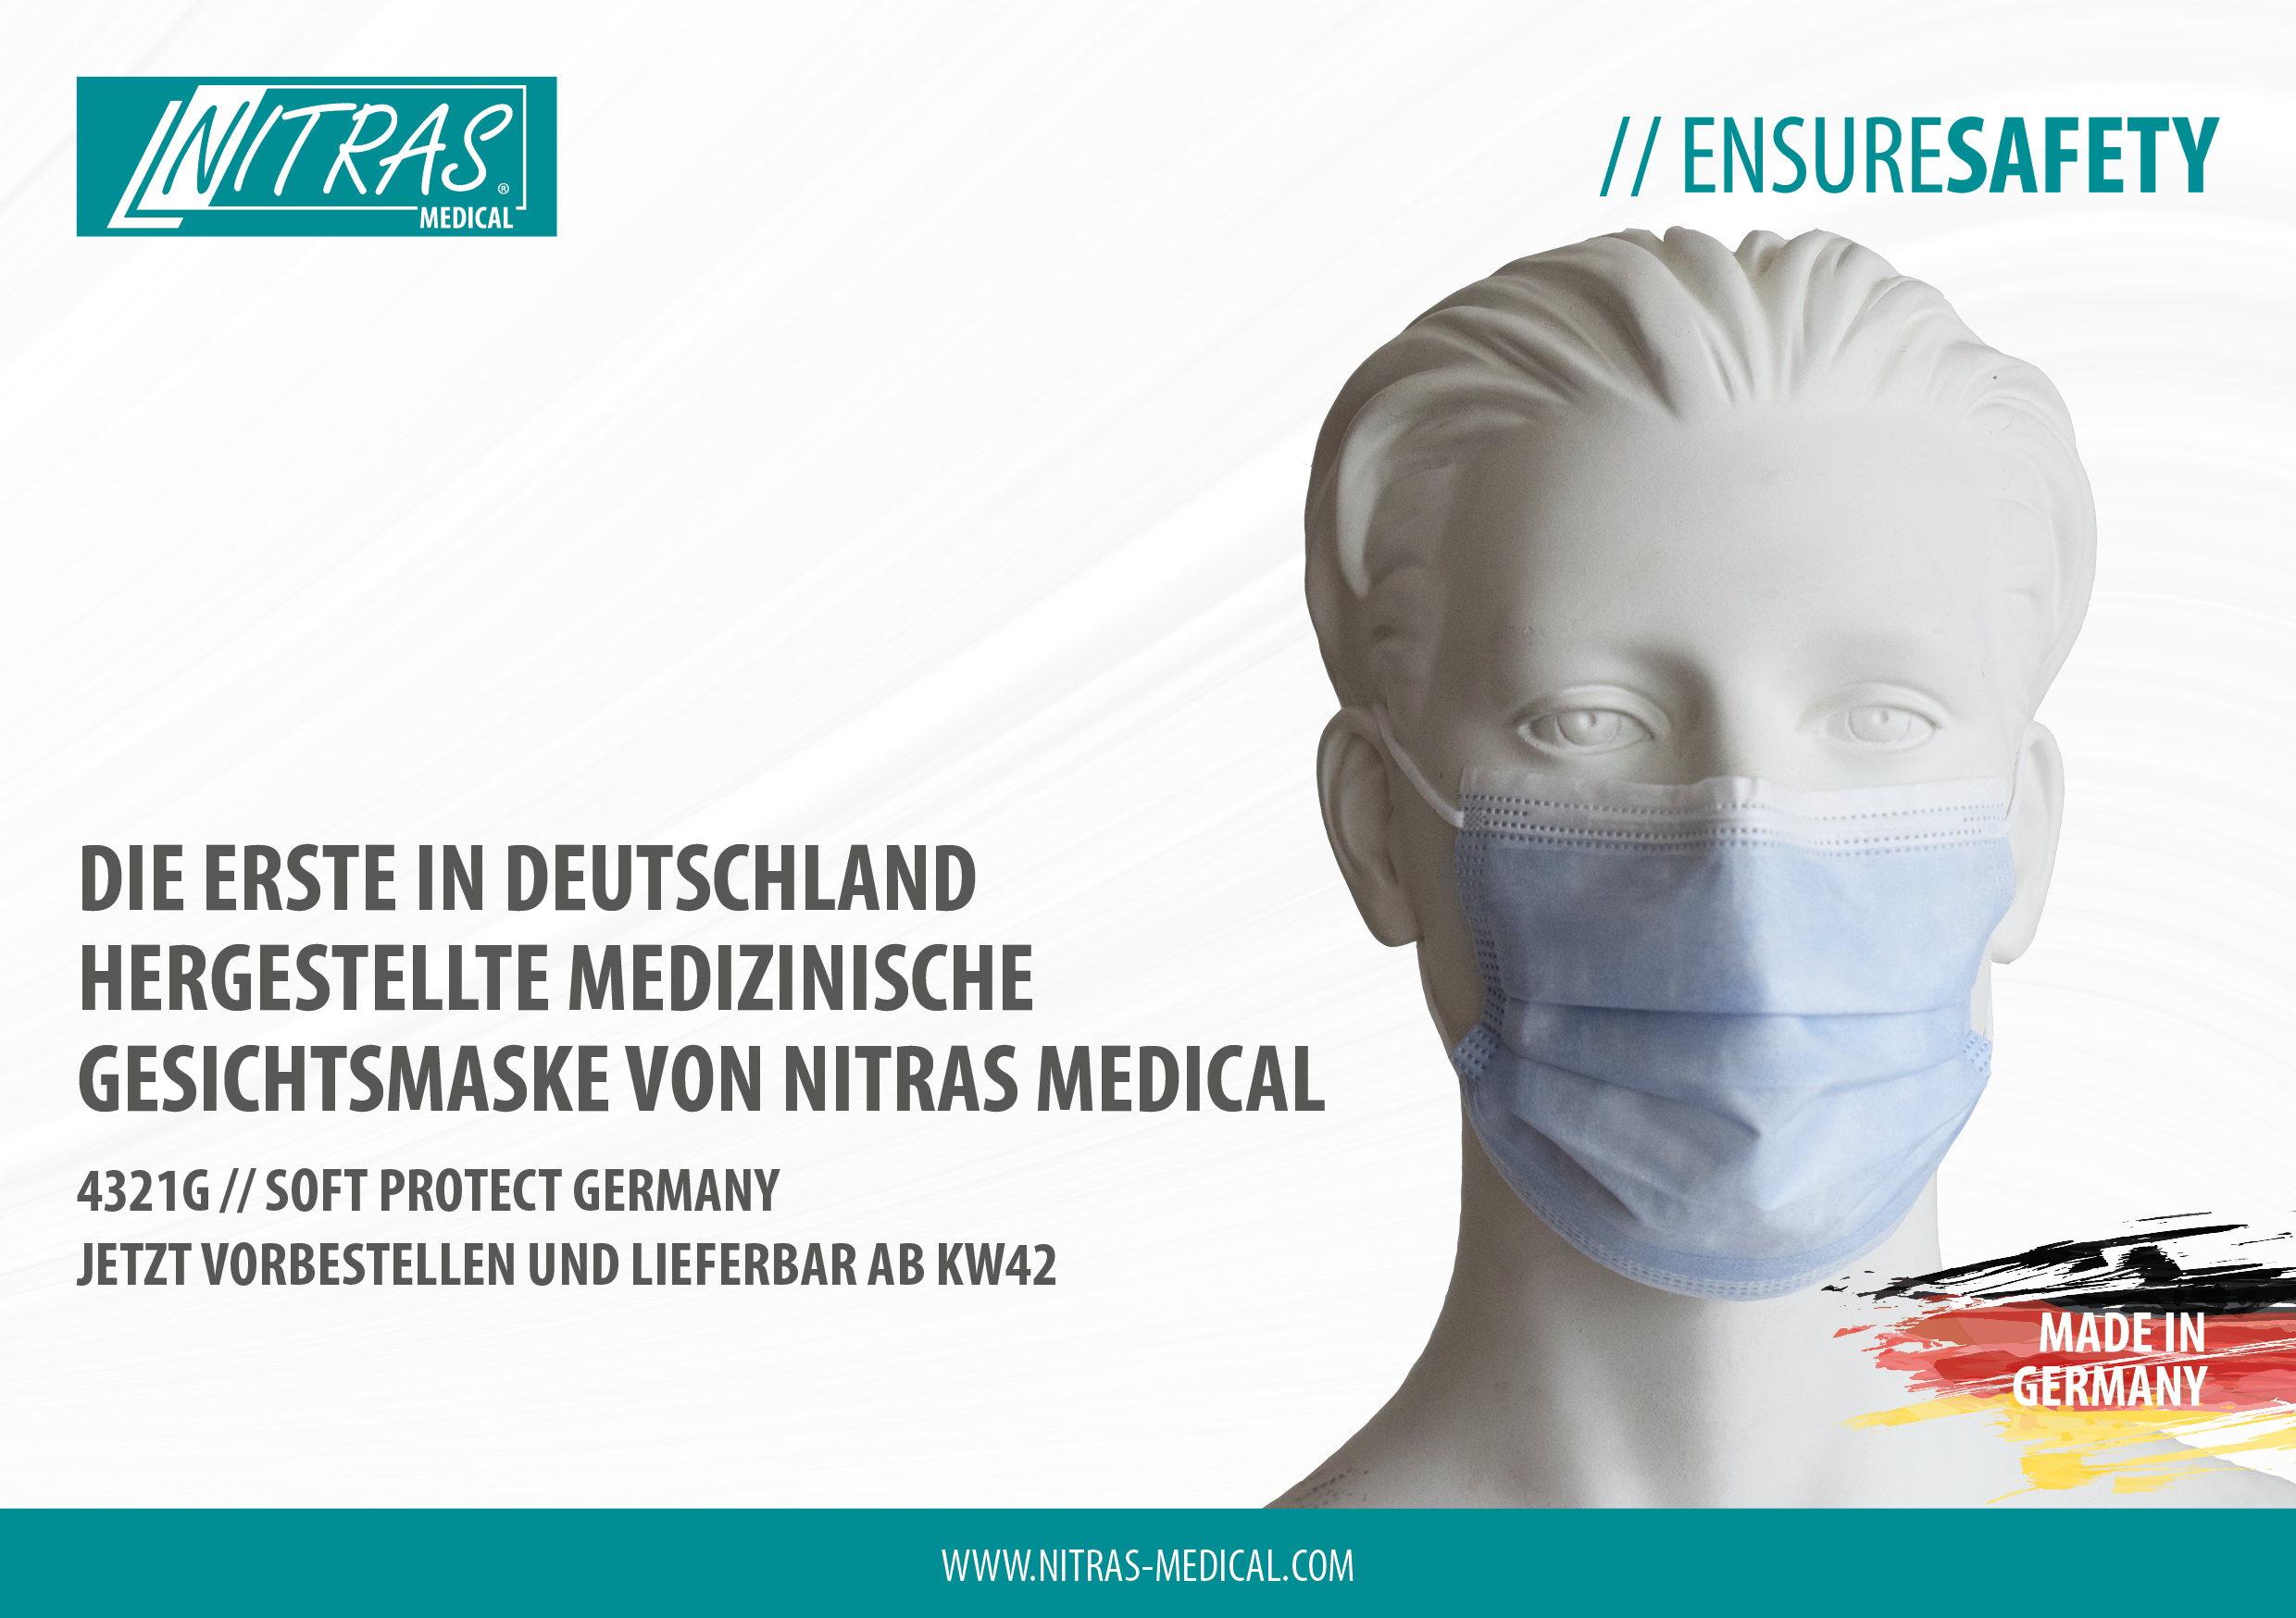 NITRAS MEDICAL: Medizinische Gesichtsmaske made in Germany